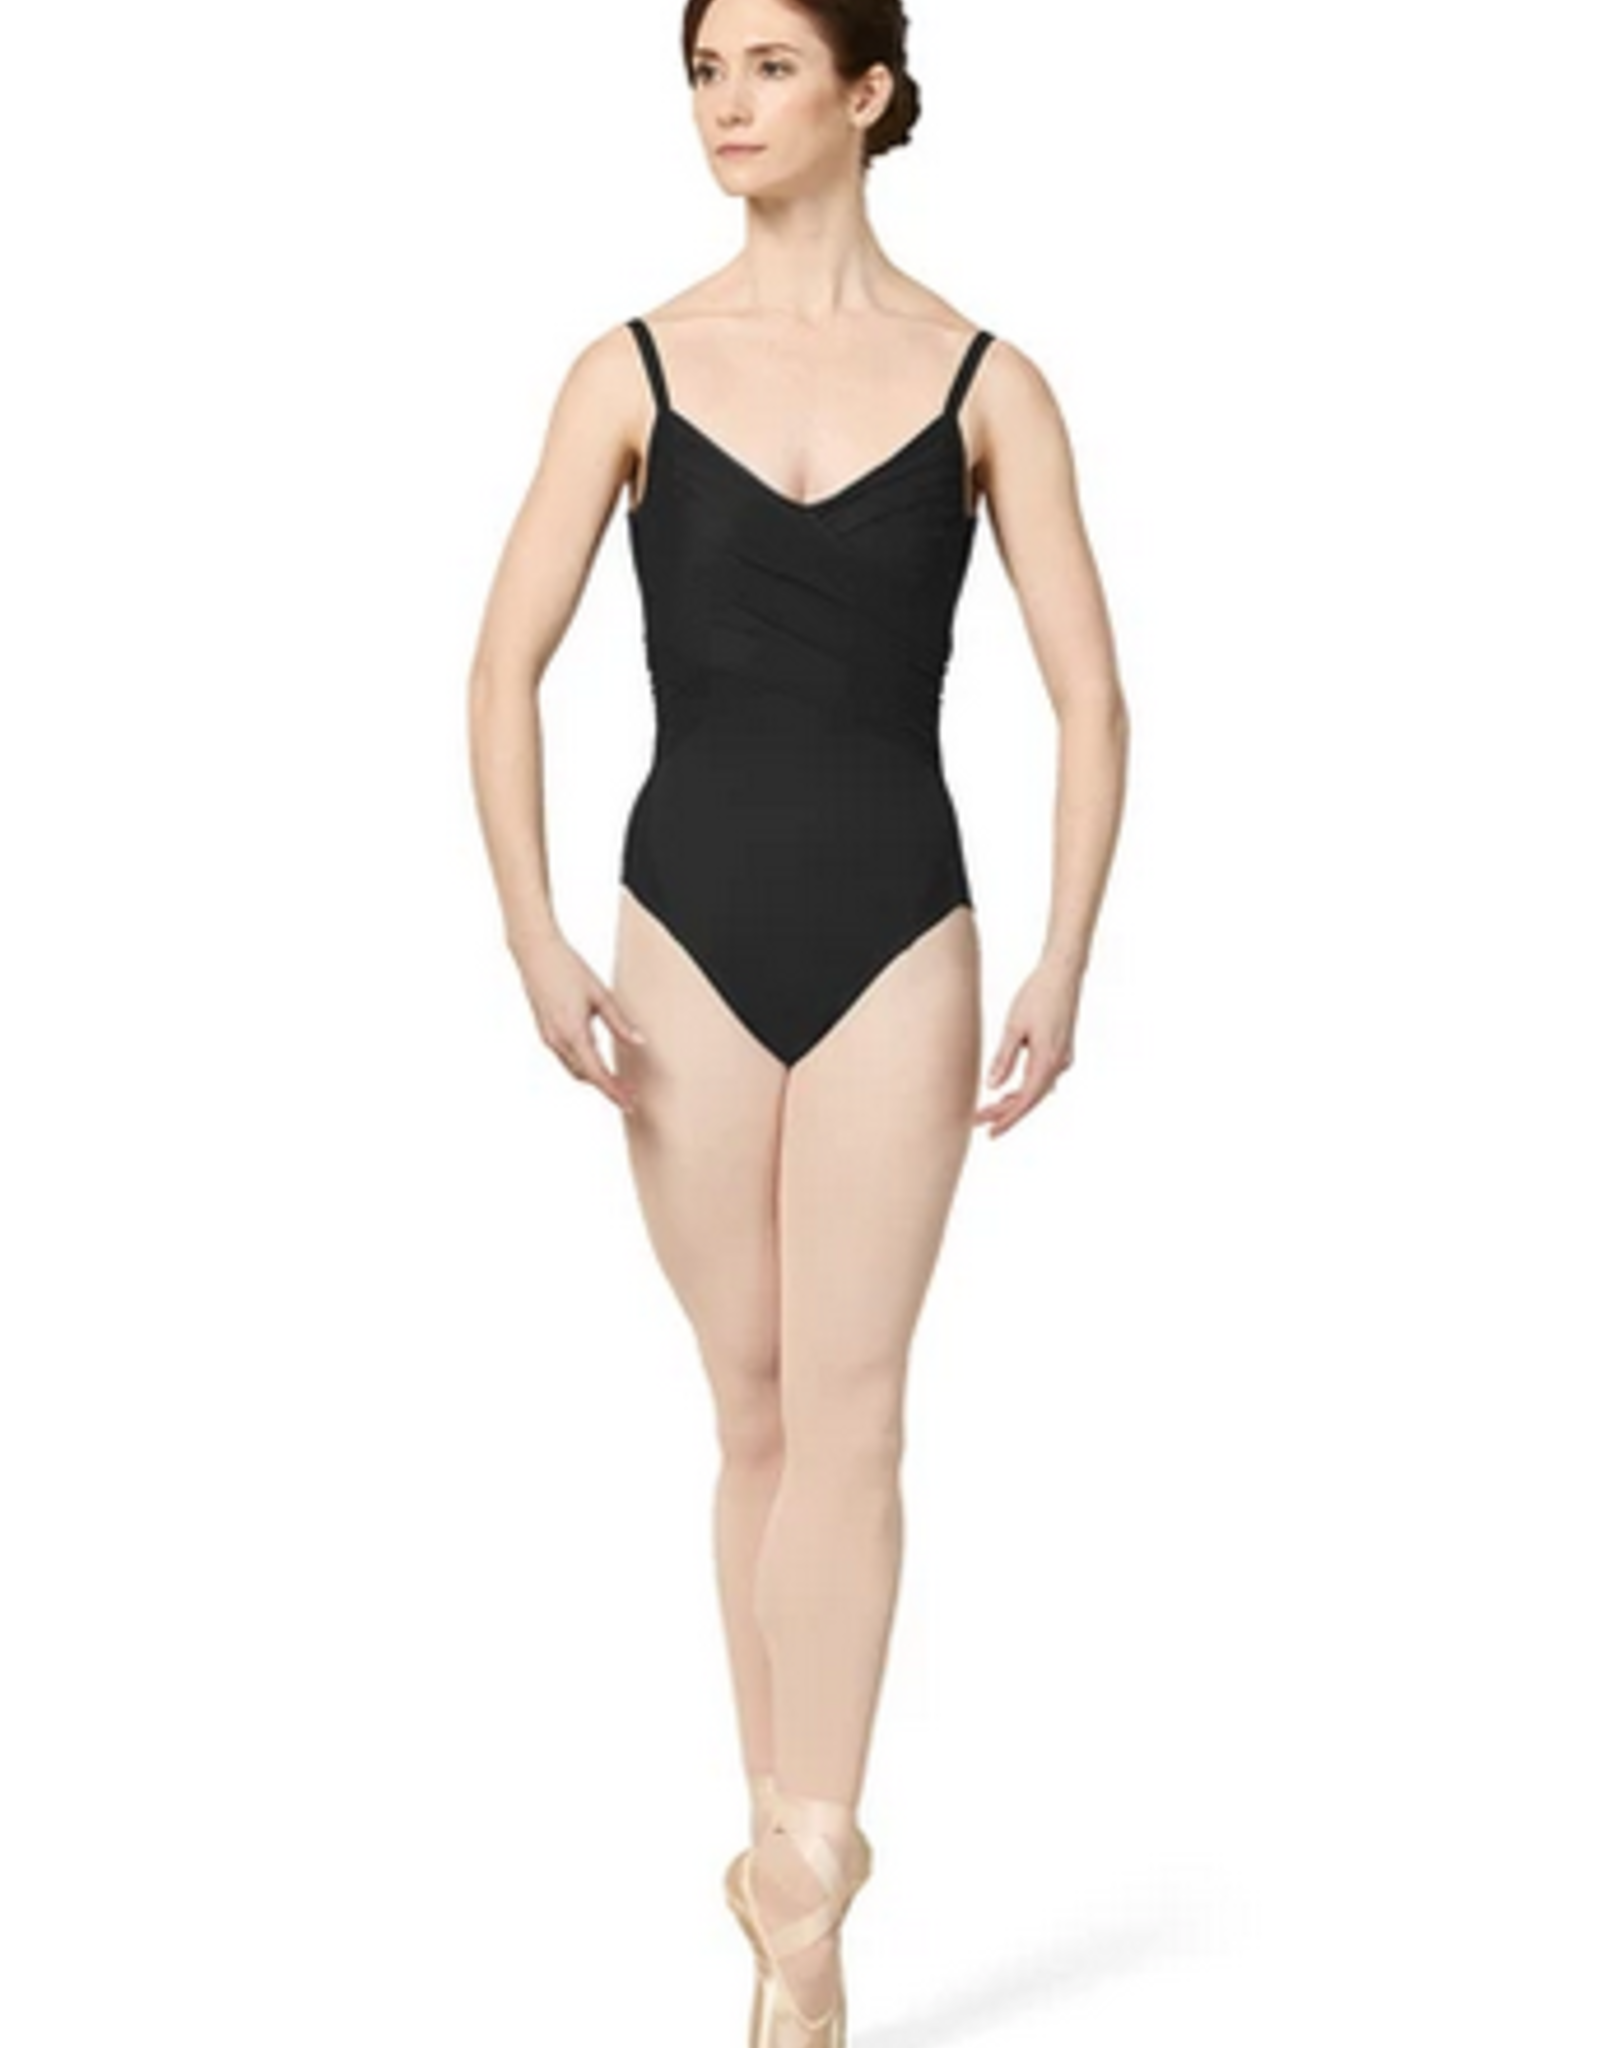 MIRELLA GATHERED MESH WRAP FRONT BODICE LEOTARD (M2172LM)